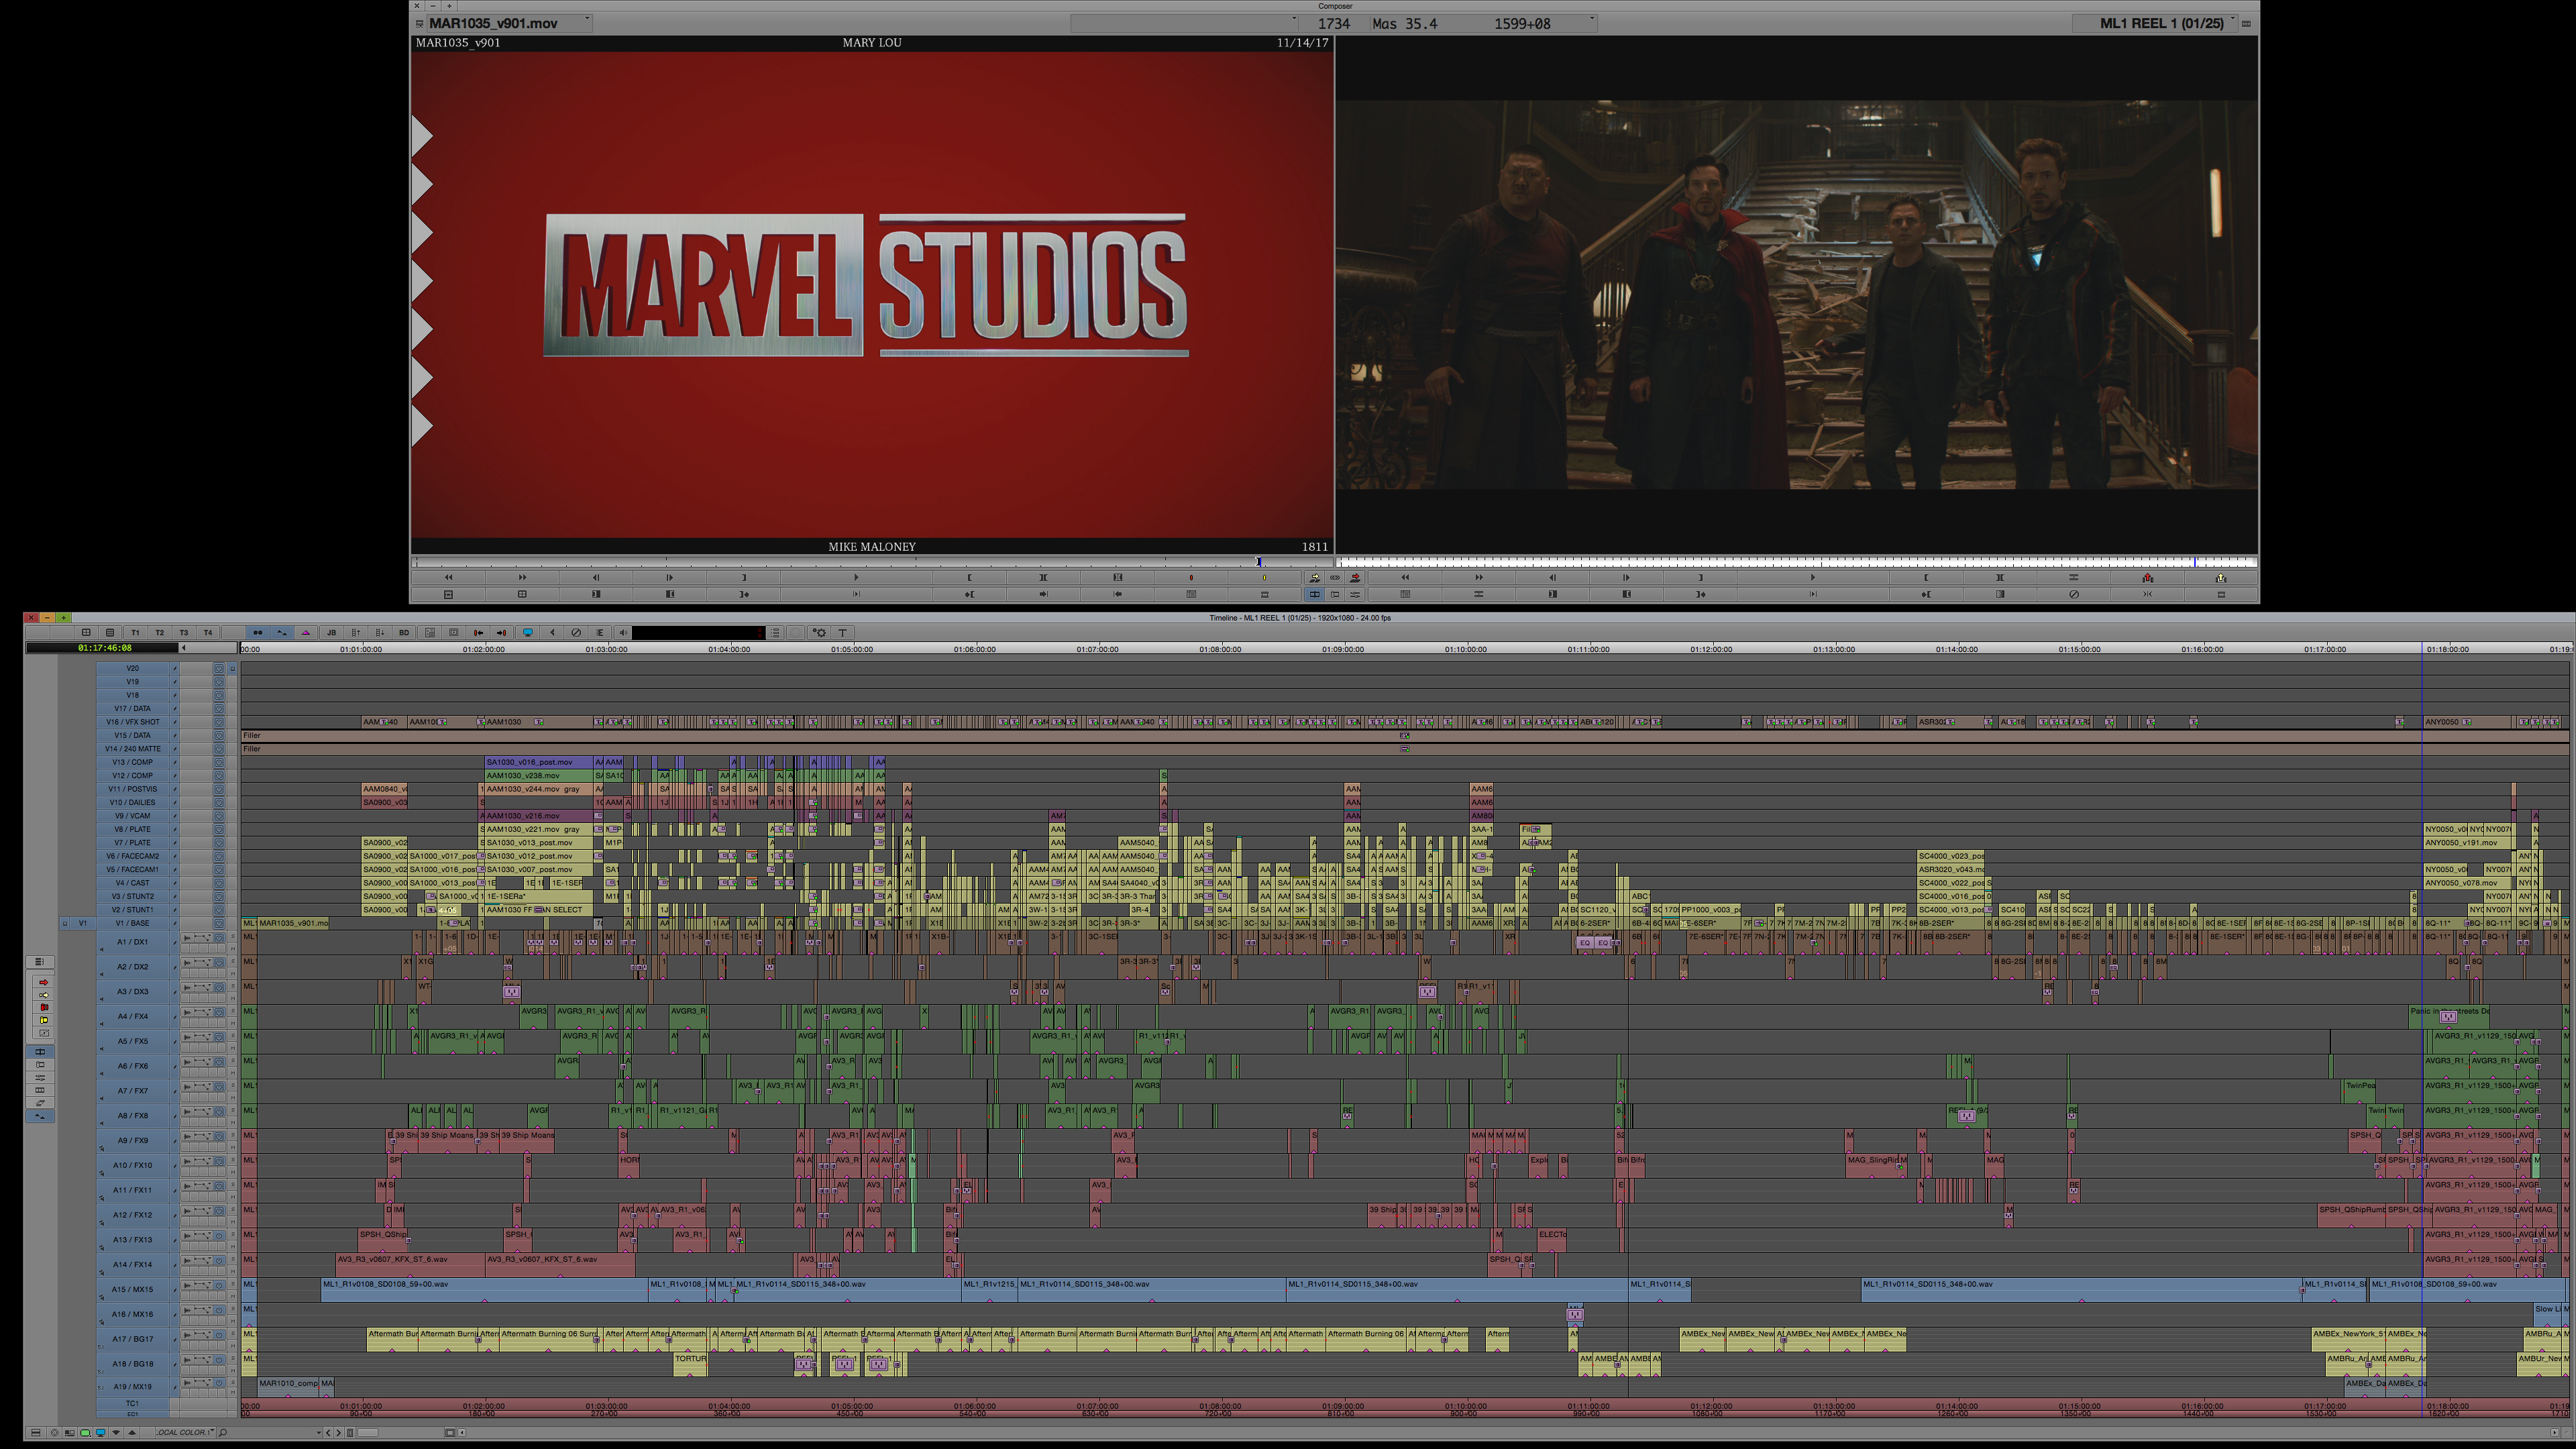 ART OF THE CUT with Avengers - Infinity War editor, Jeffrey